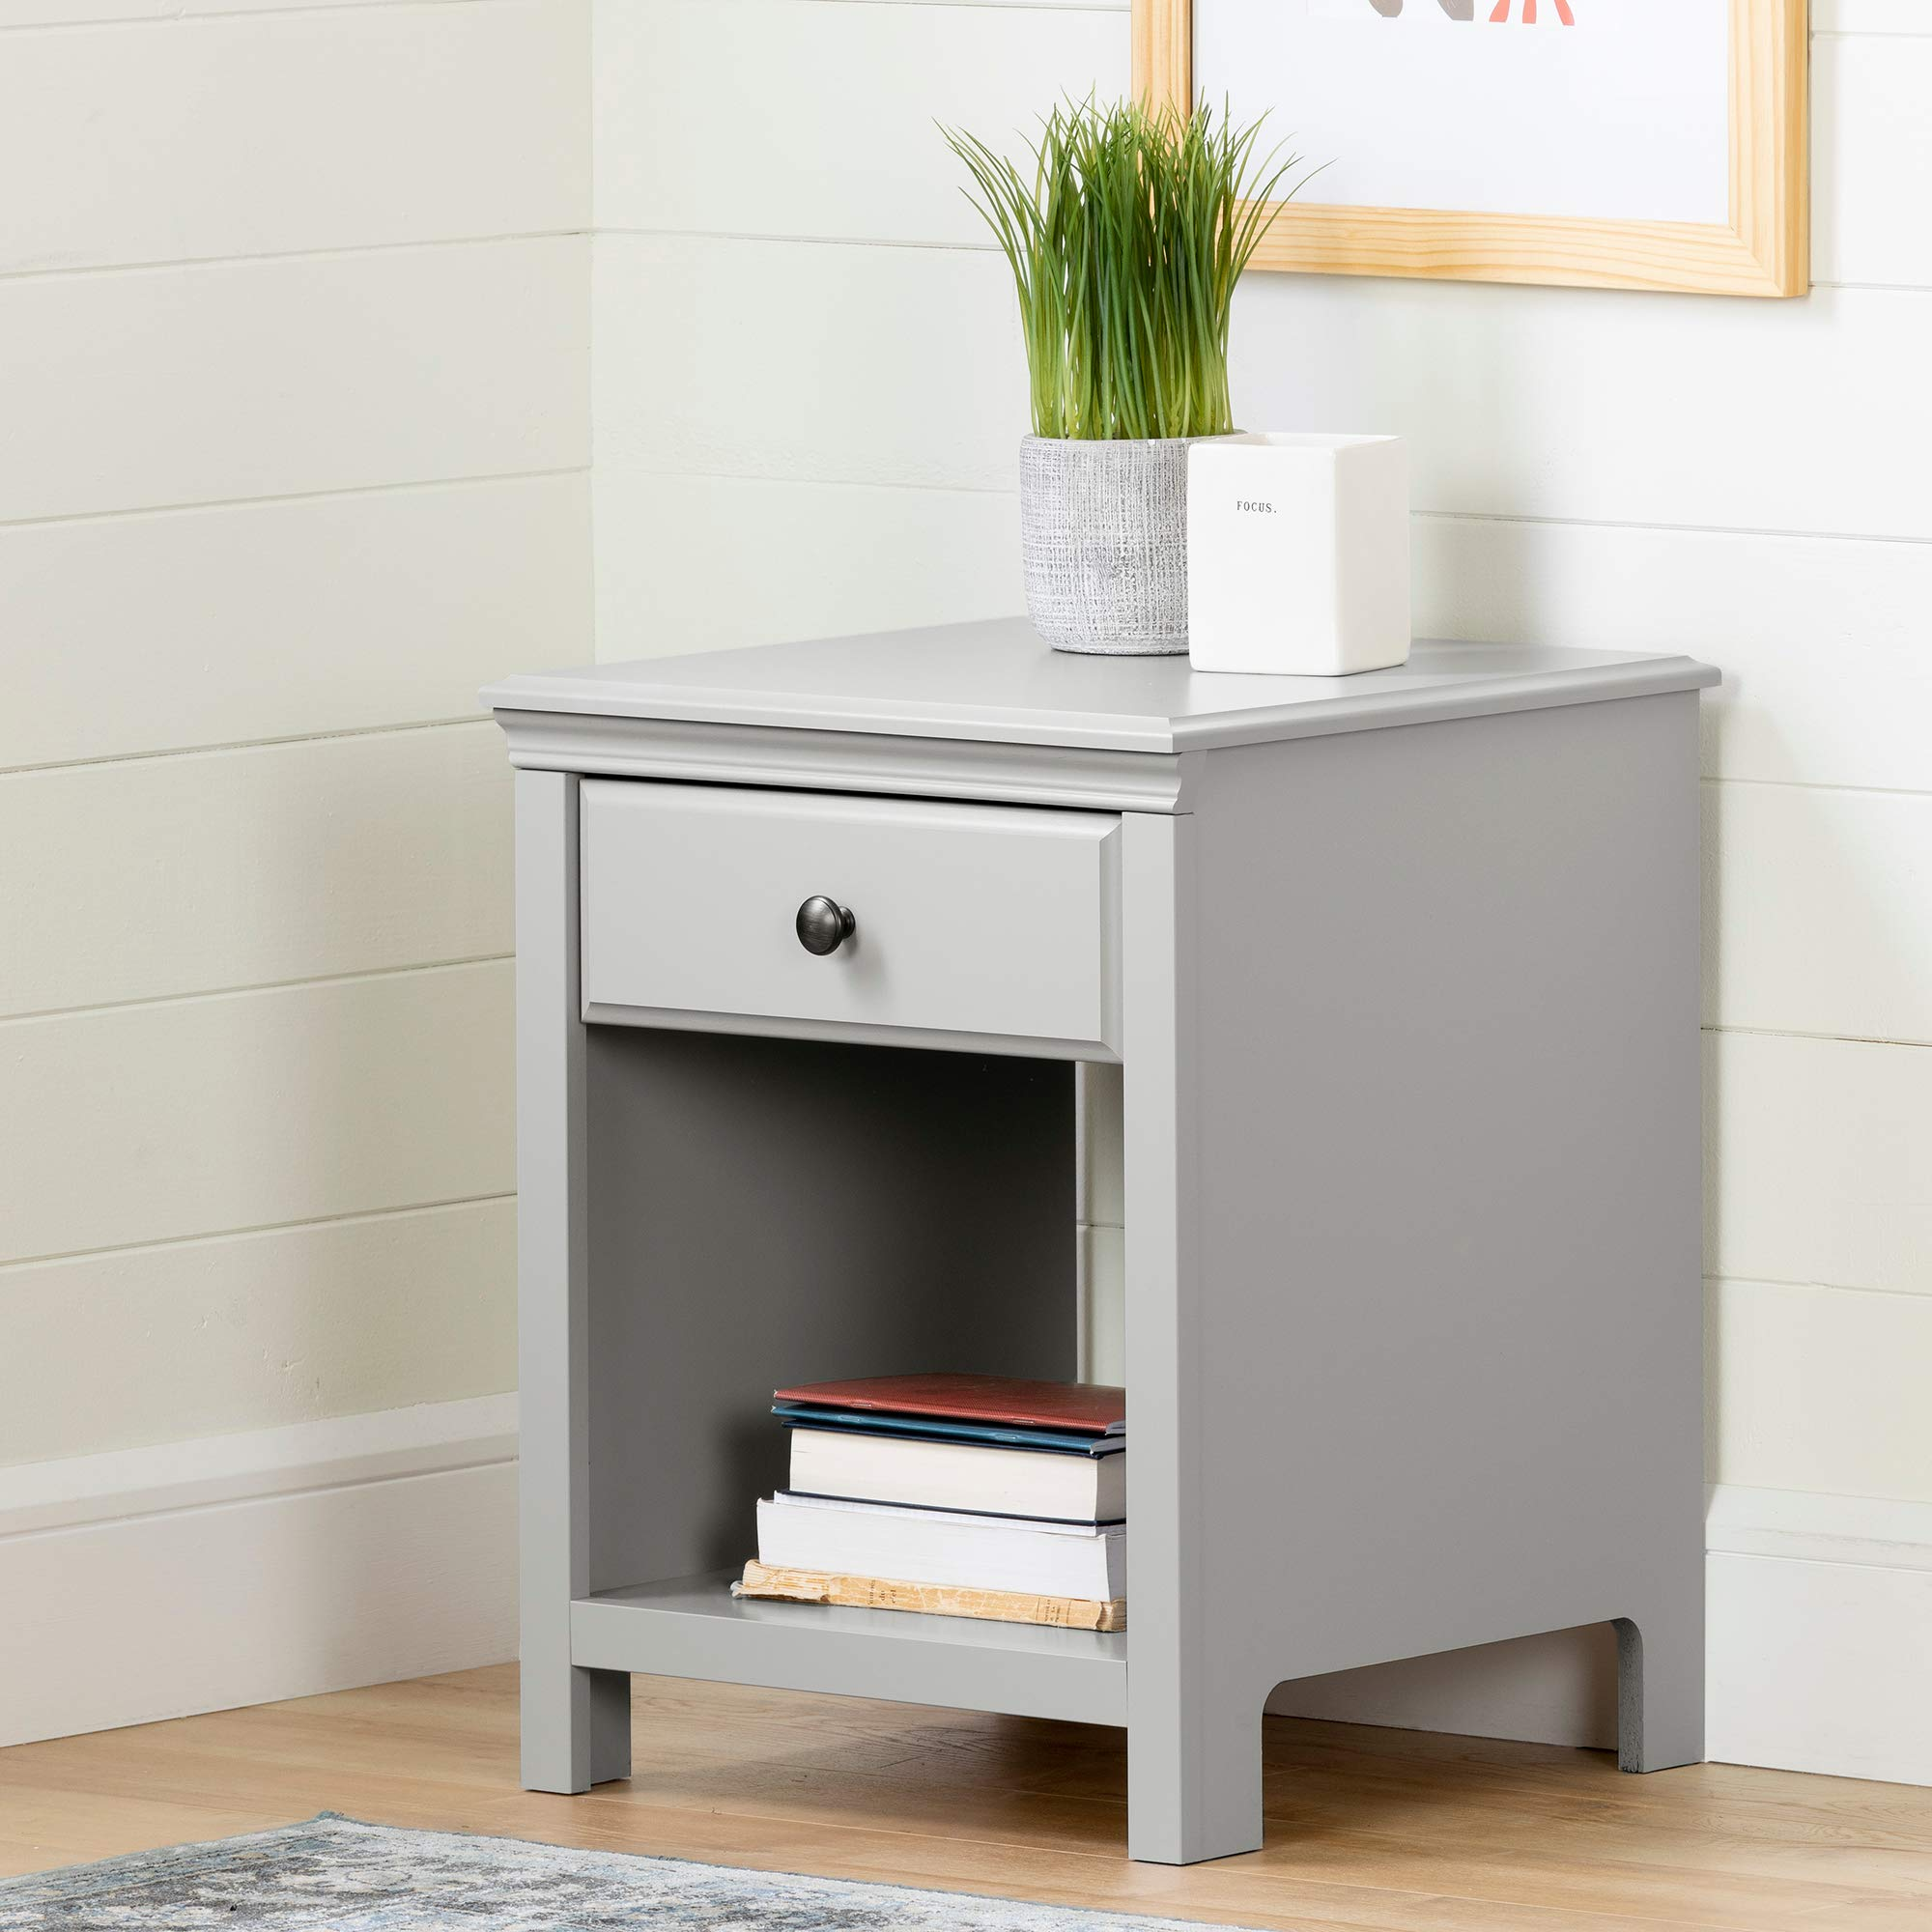 South Shore 12139 Cotton Candy 1-Drawer Nightstand, Soft Gray by South Shore